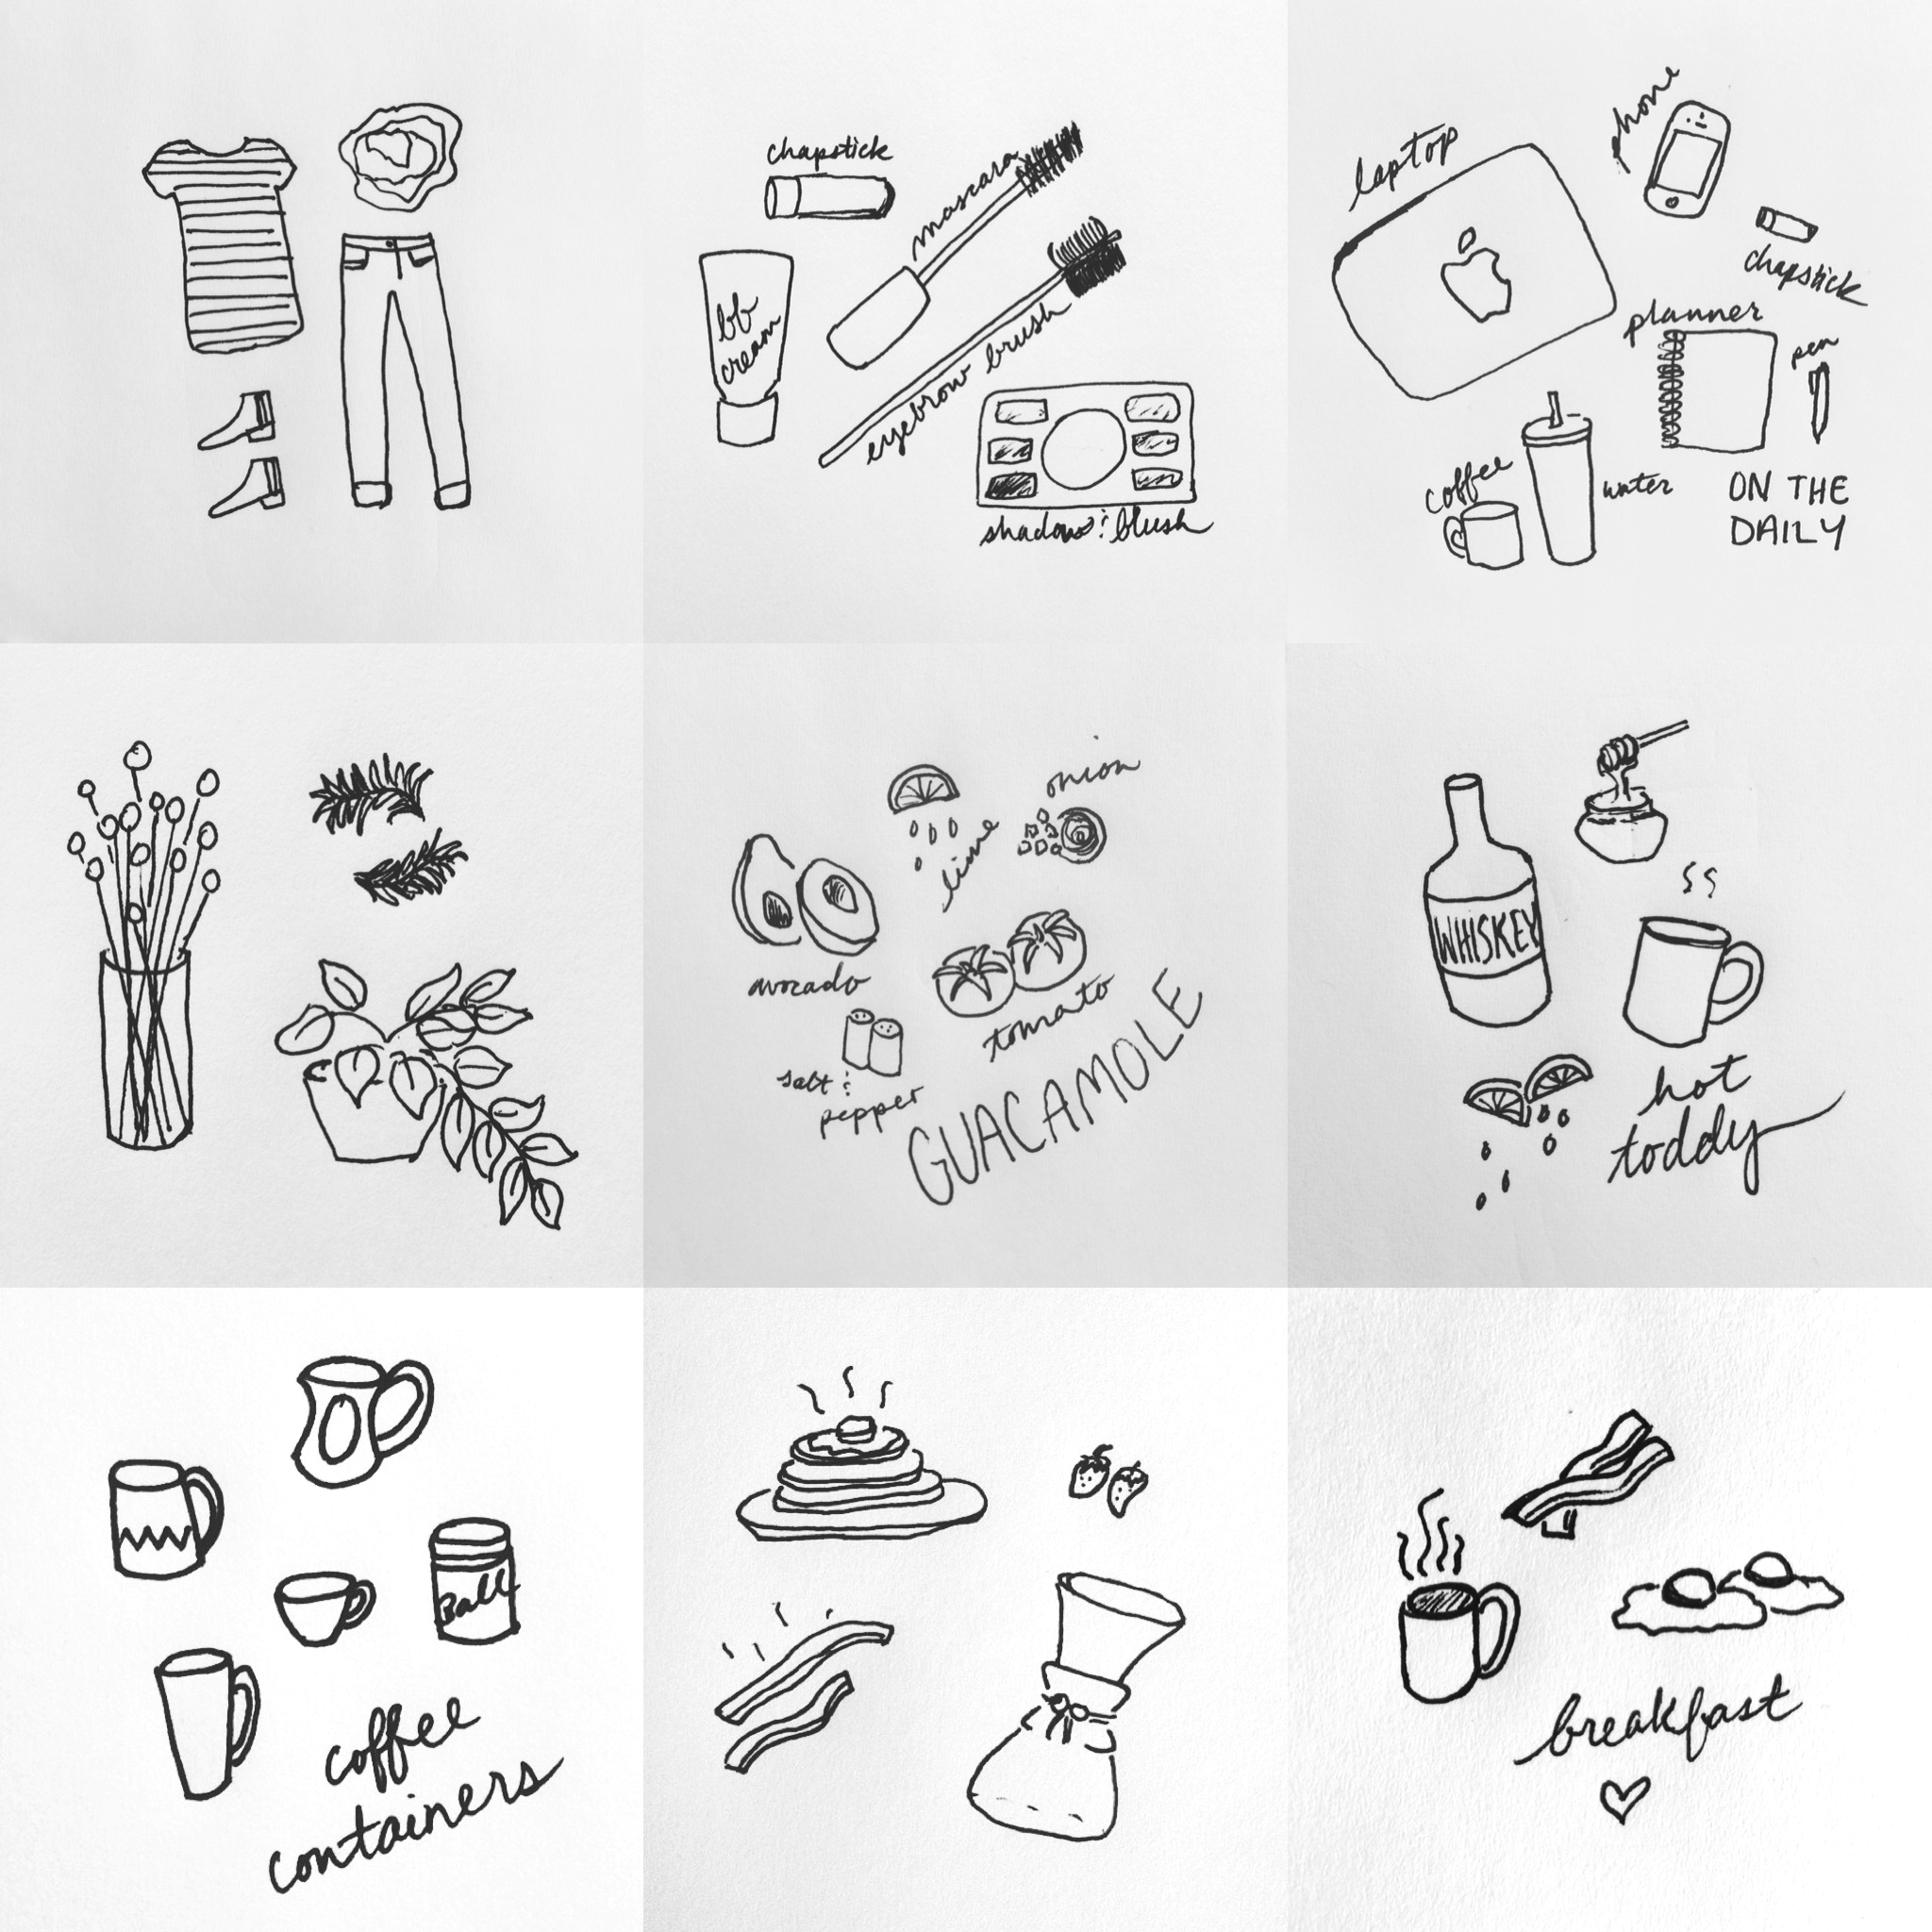 Sketches by Briana Kapper